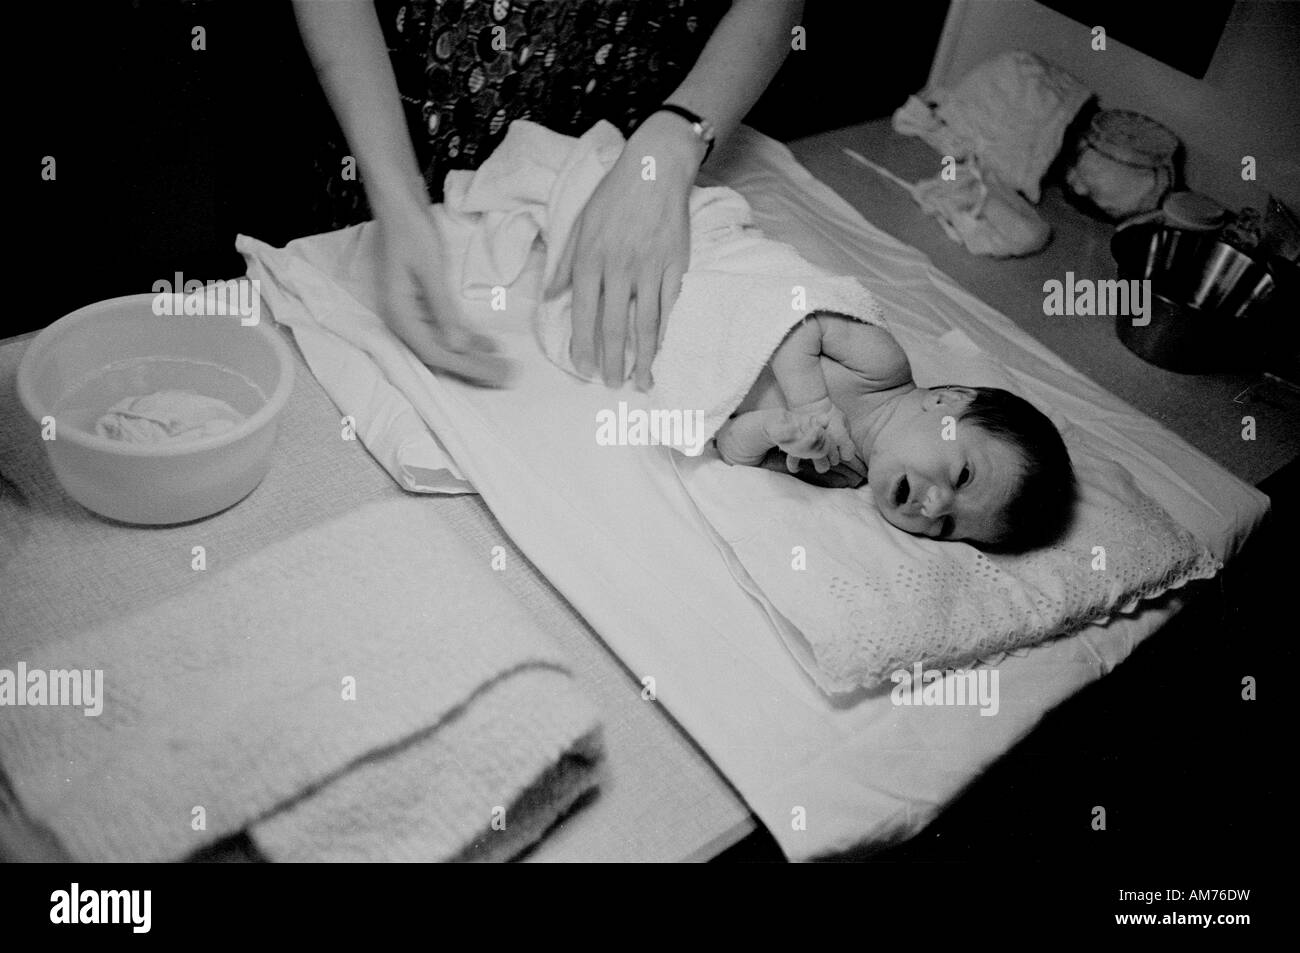 Tending an infant in the sixties - Stock Image